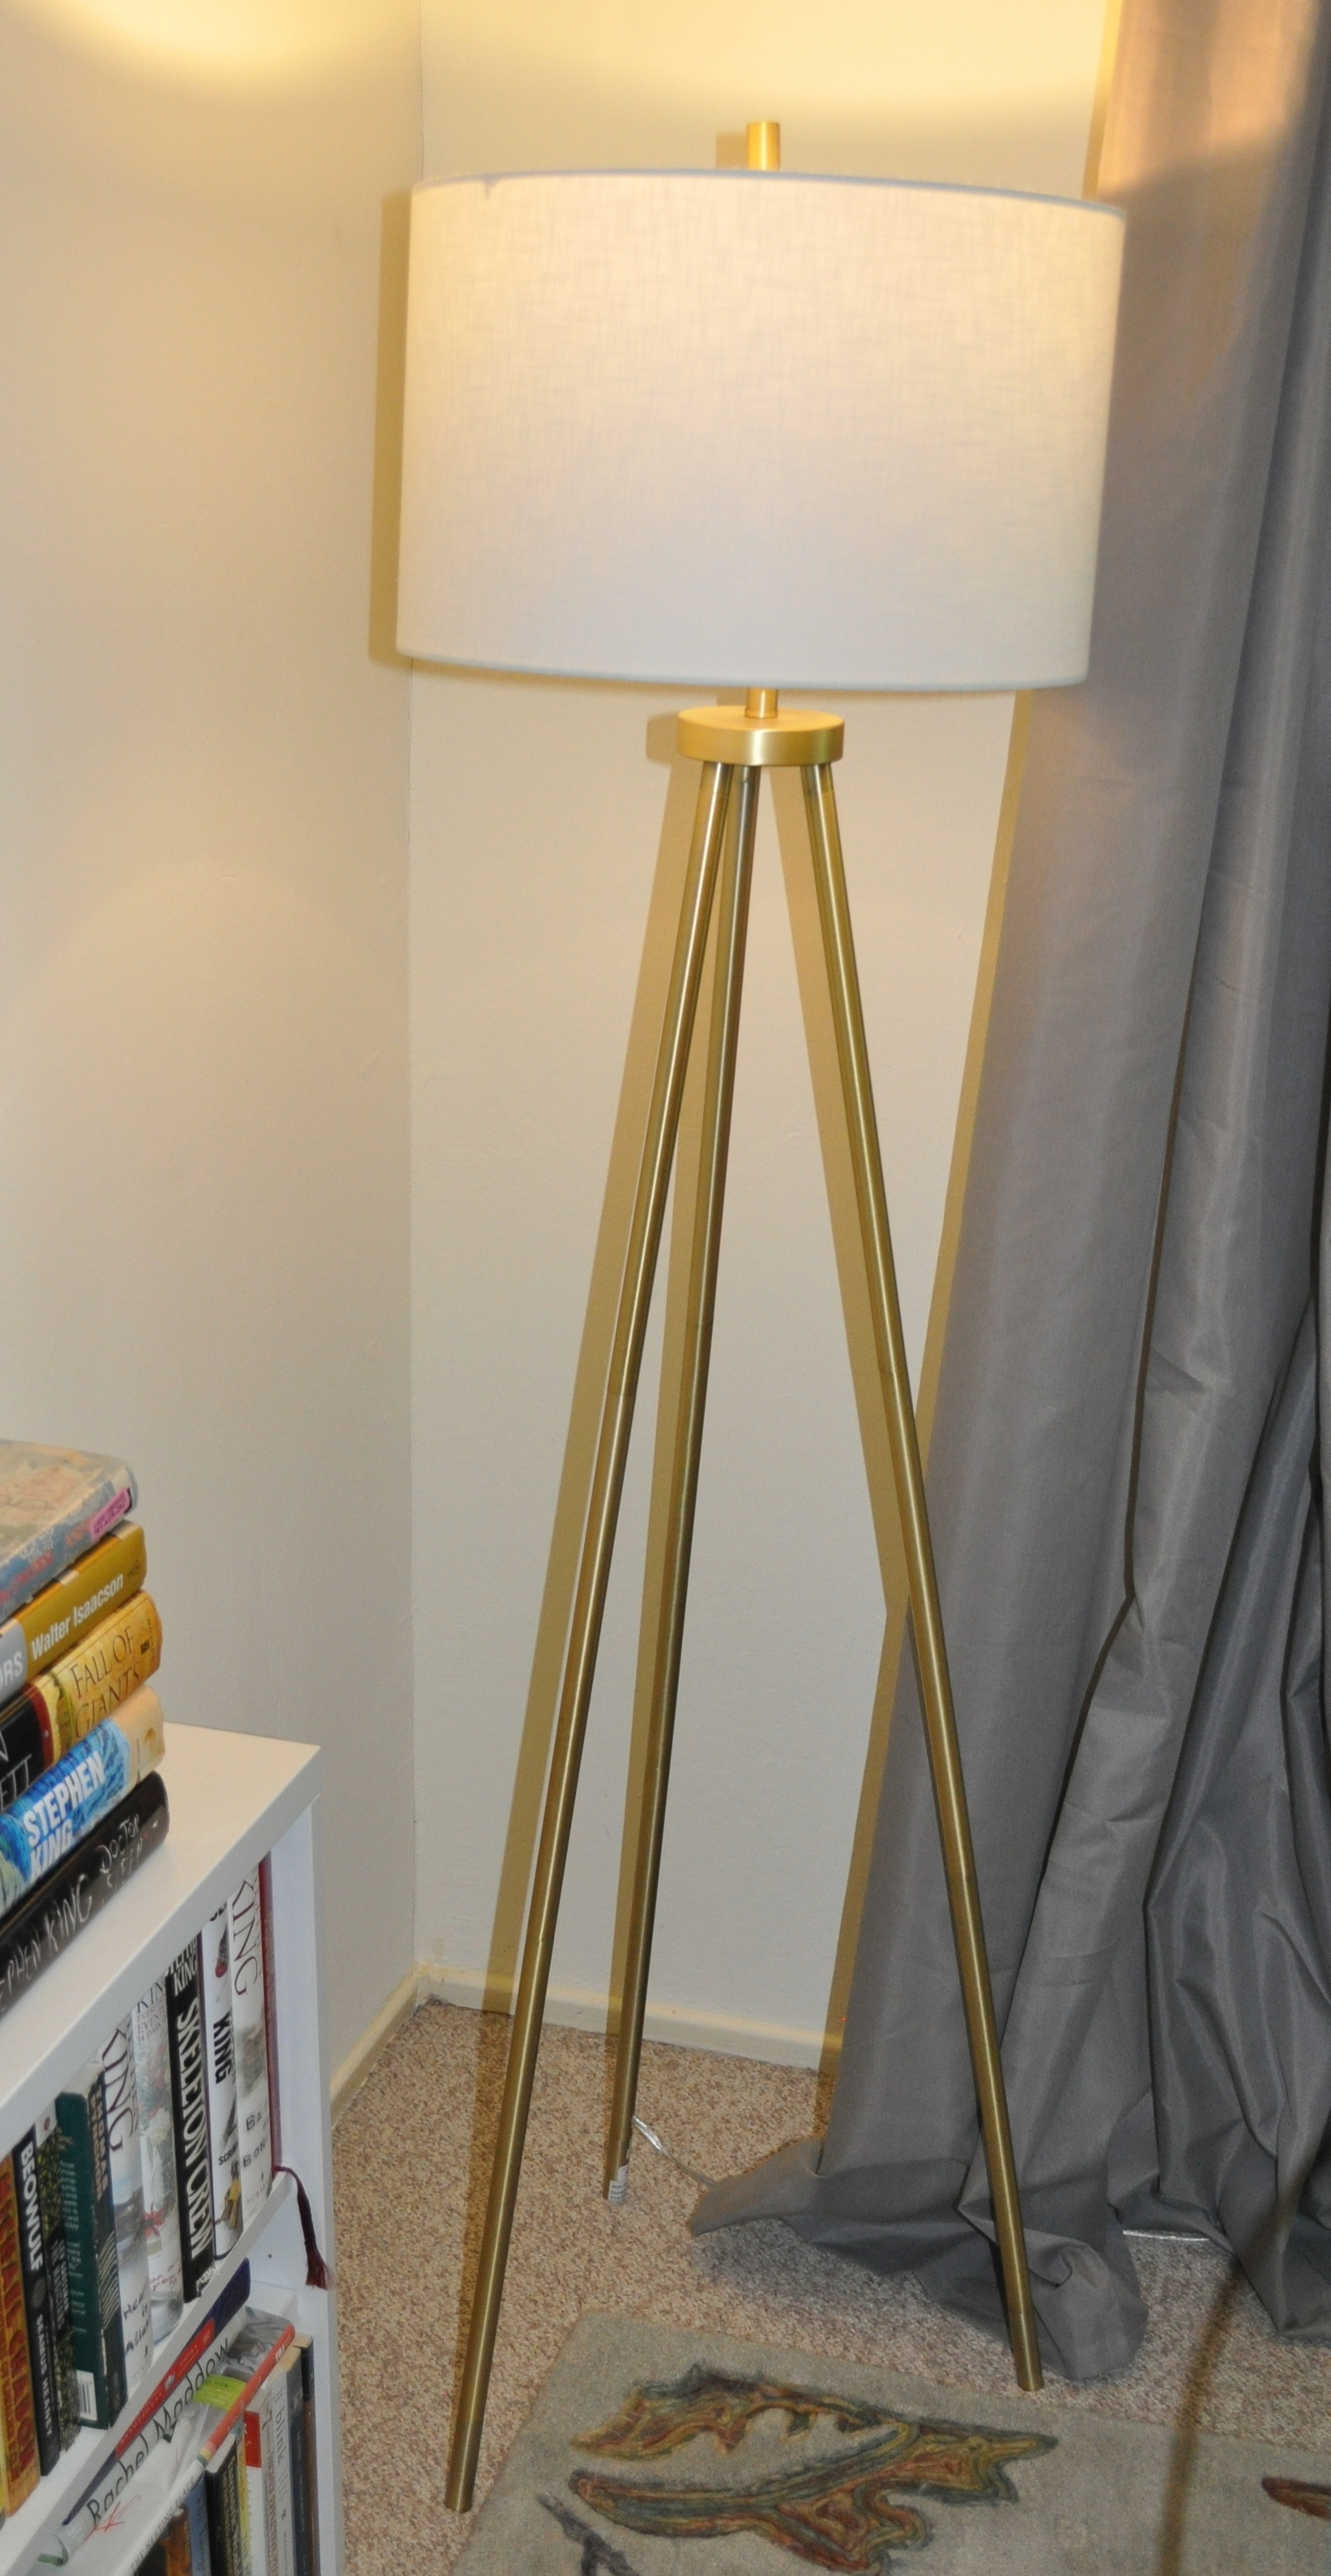 The new tripod lamp